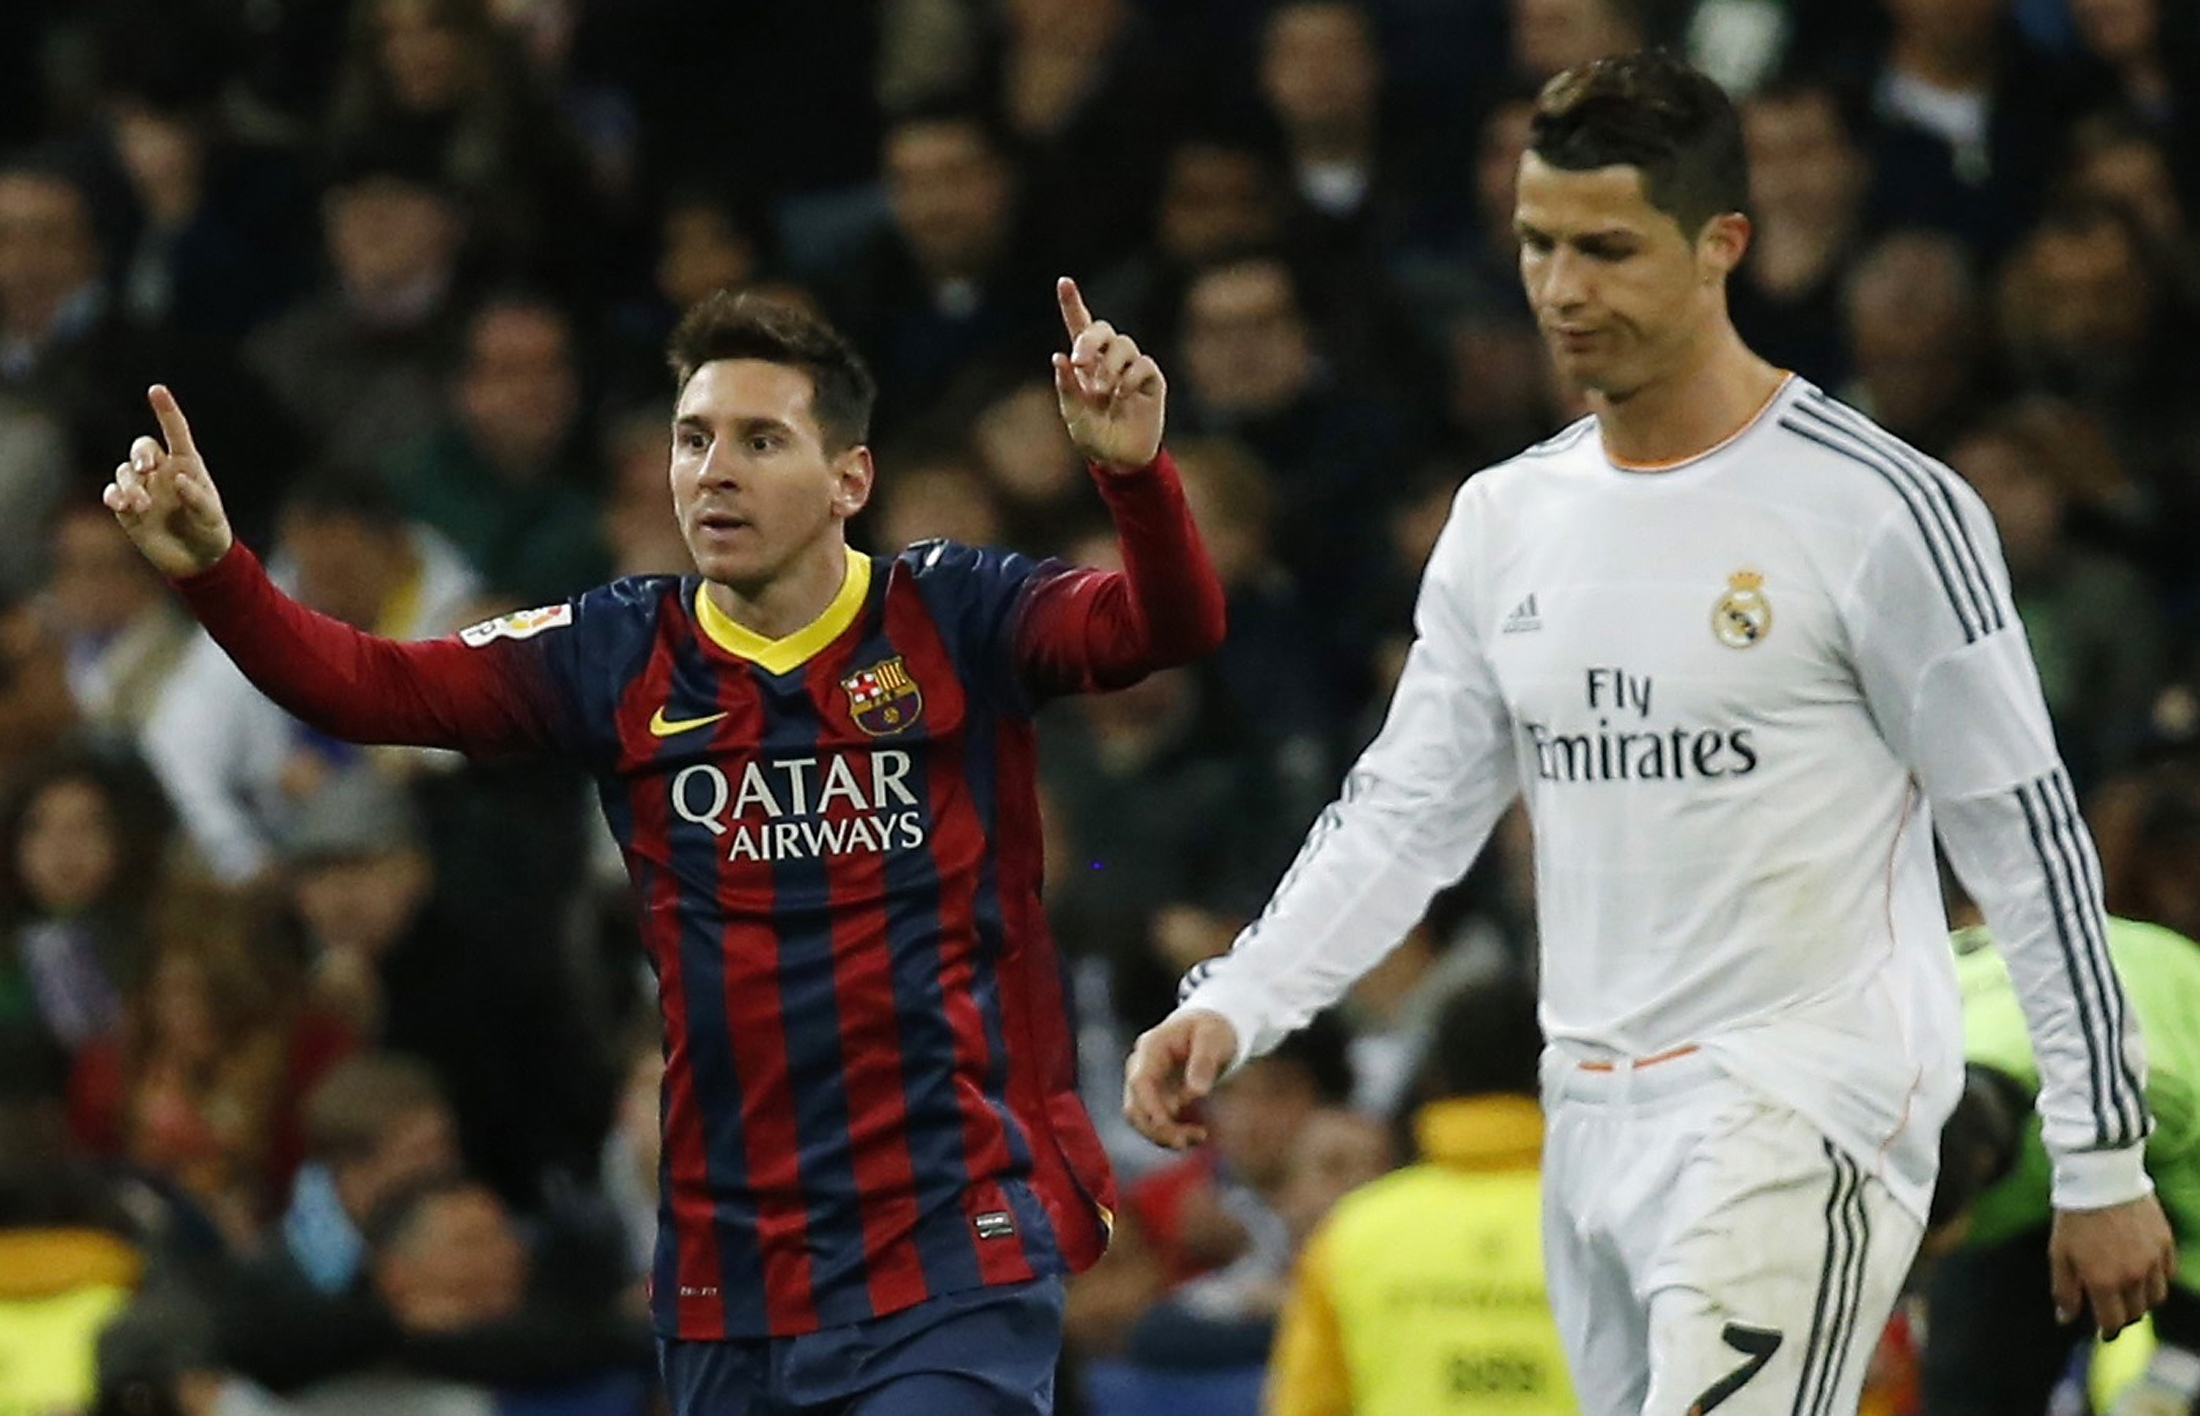 Barcelona's Lionel Messi celebrates a goal next to Real Madrid's Cristiano Ronaldo during La Liga's second 'Clasico' soccer match of the season in Madrid